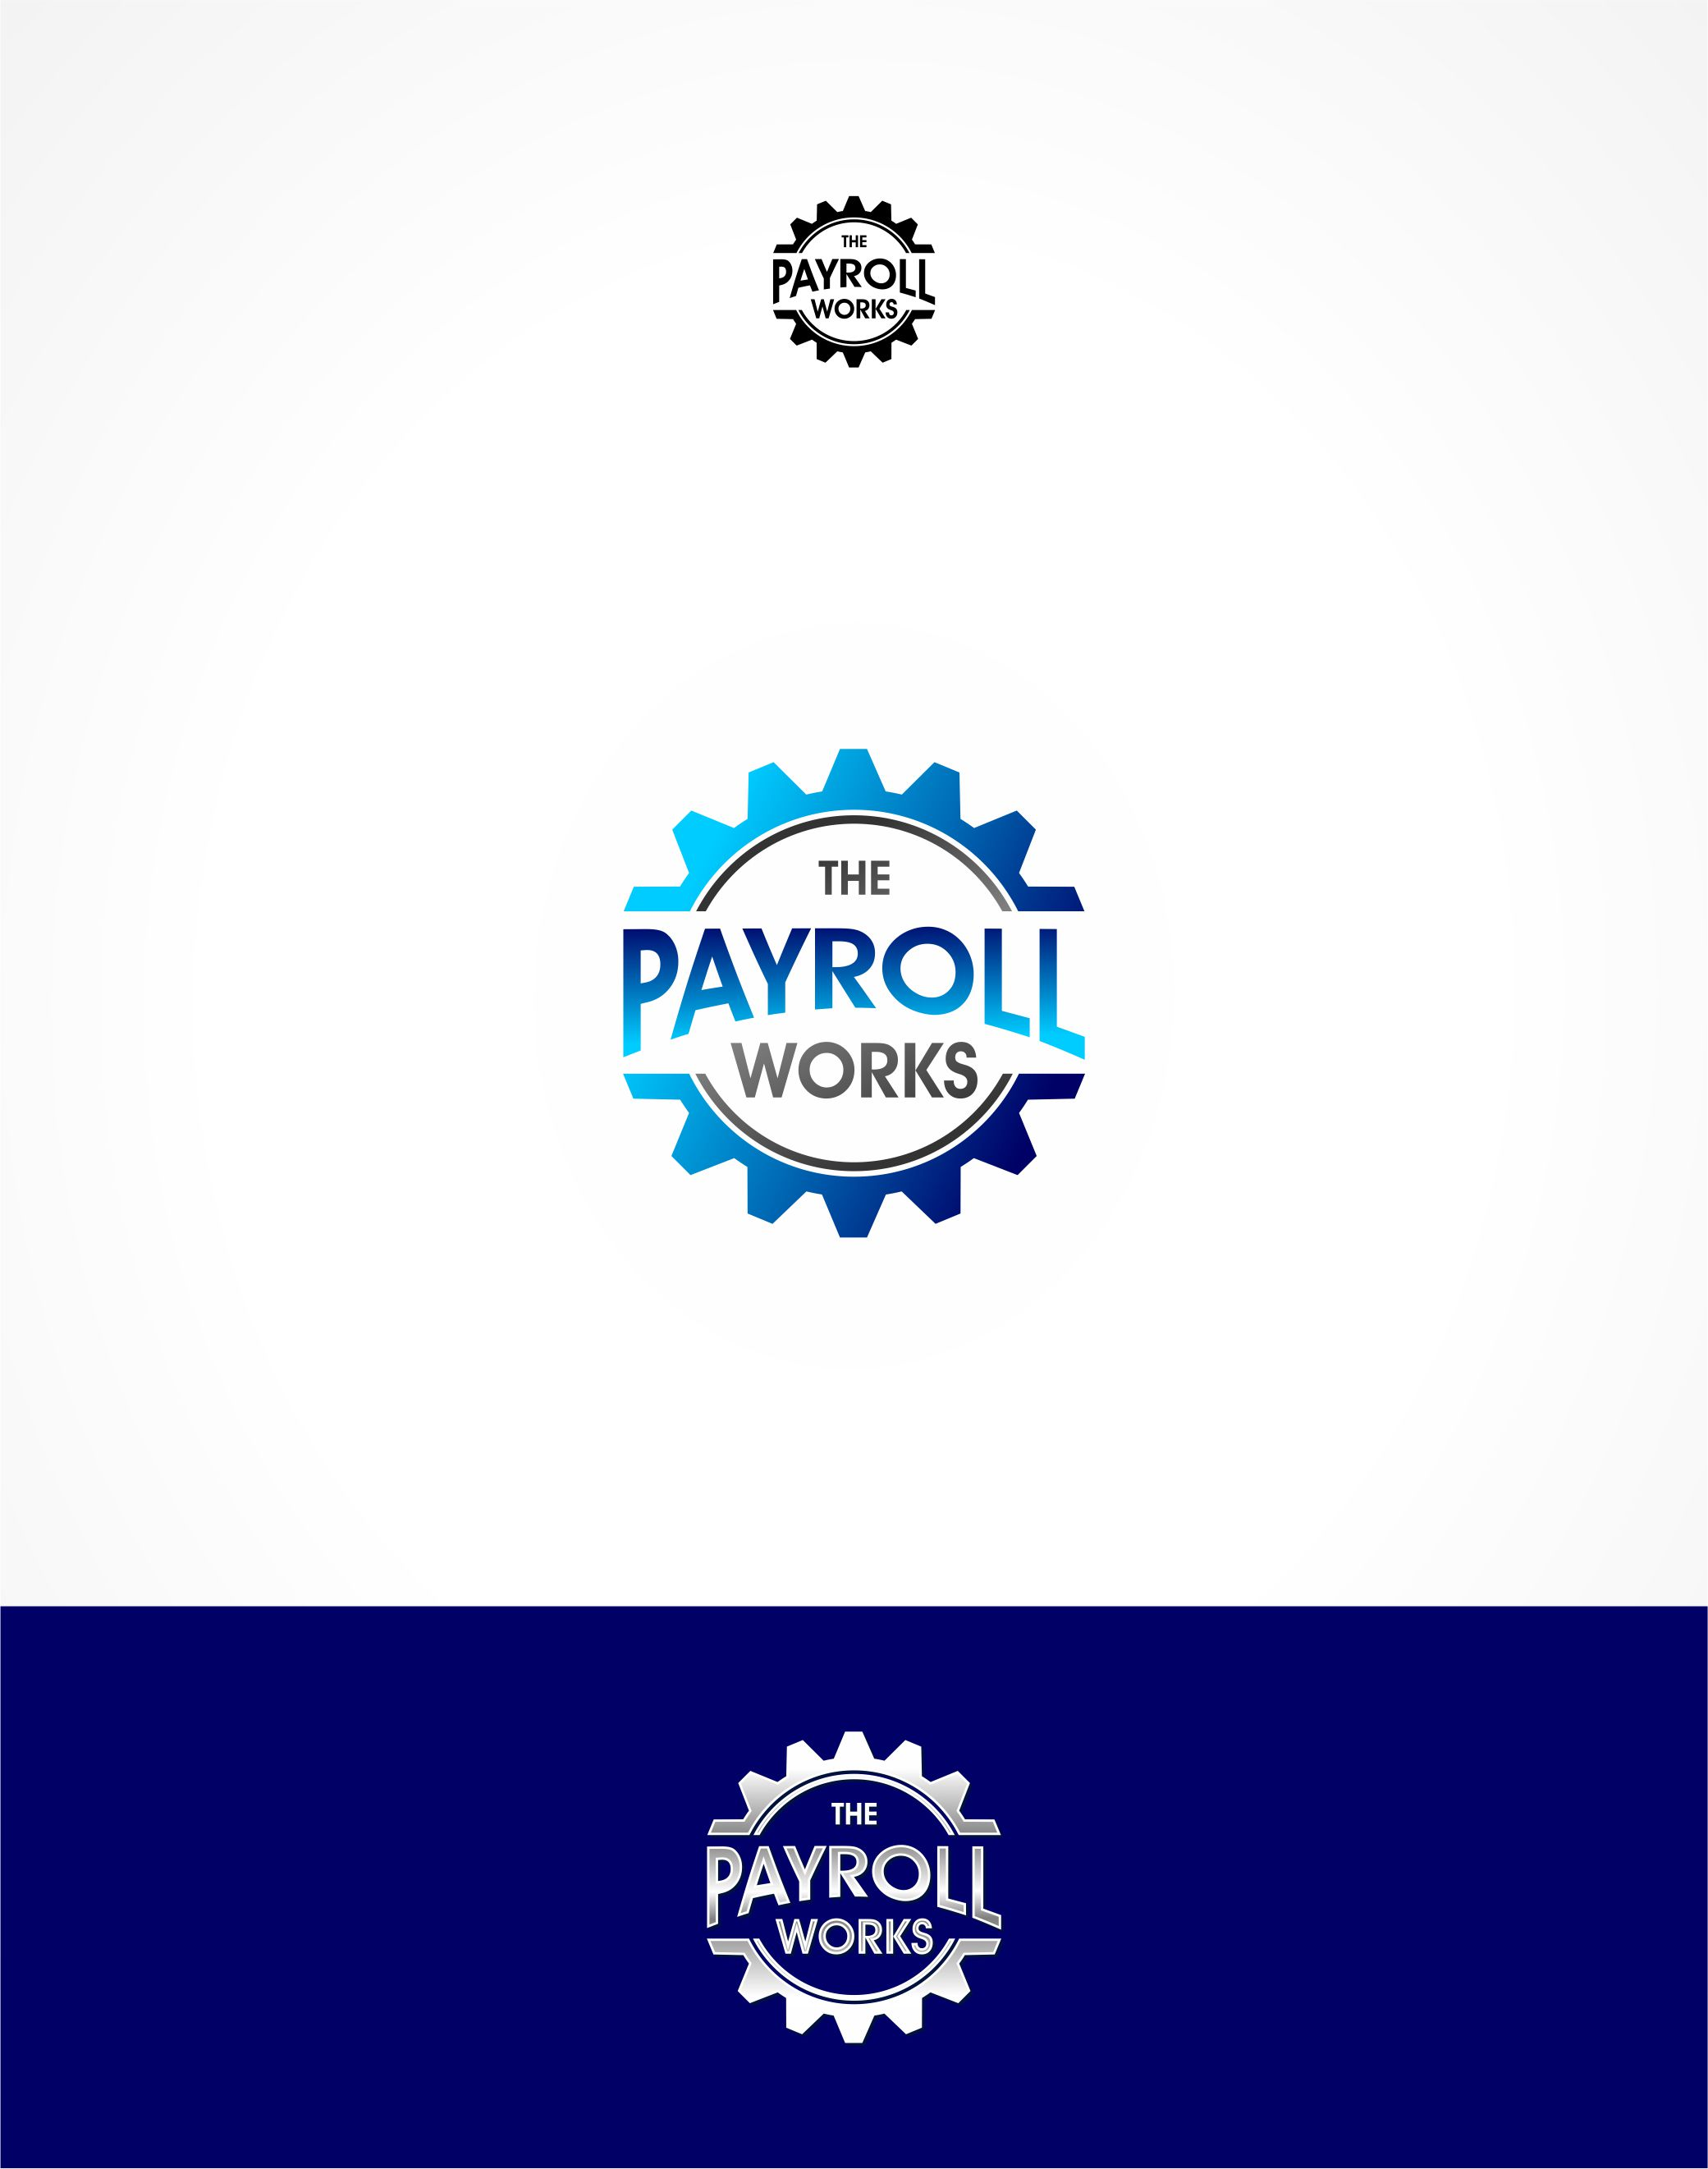 Logo Design by Raymond Garcia - Entry No. 40 in the Logo Design Contest Captivating Logo Design for The Payroll Works.